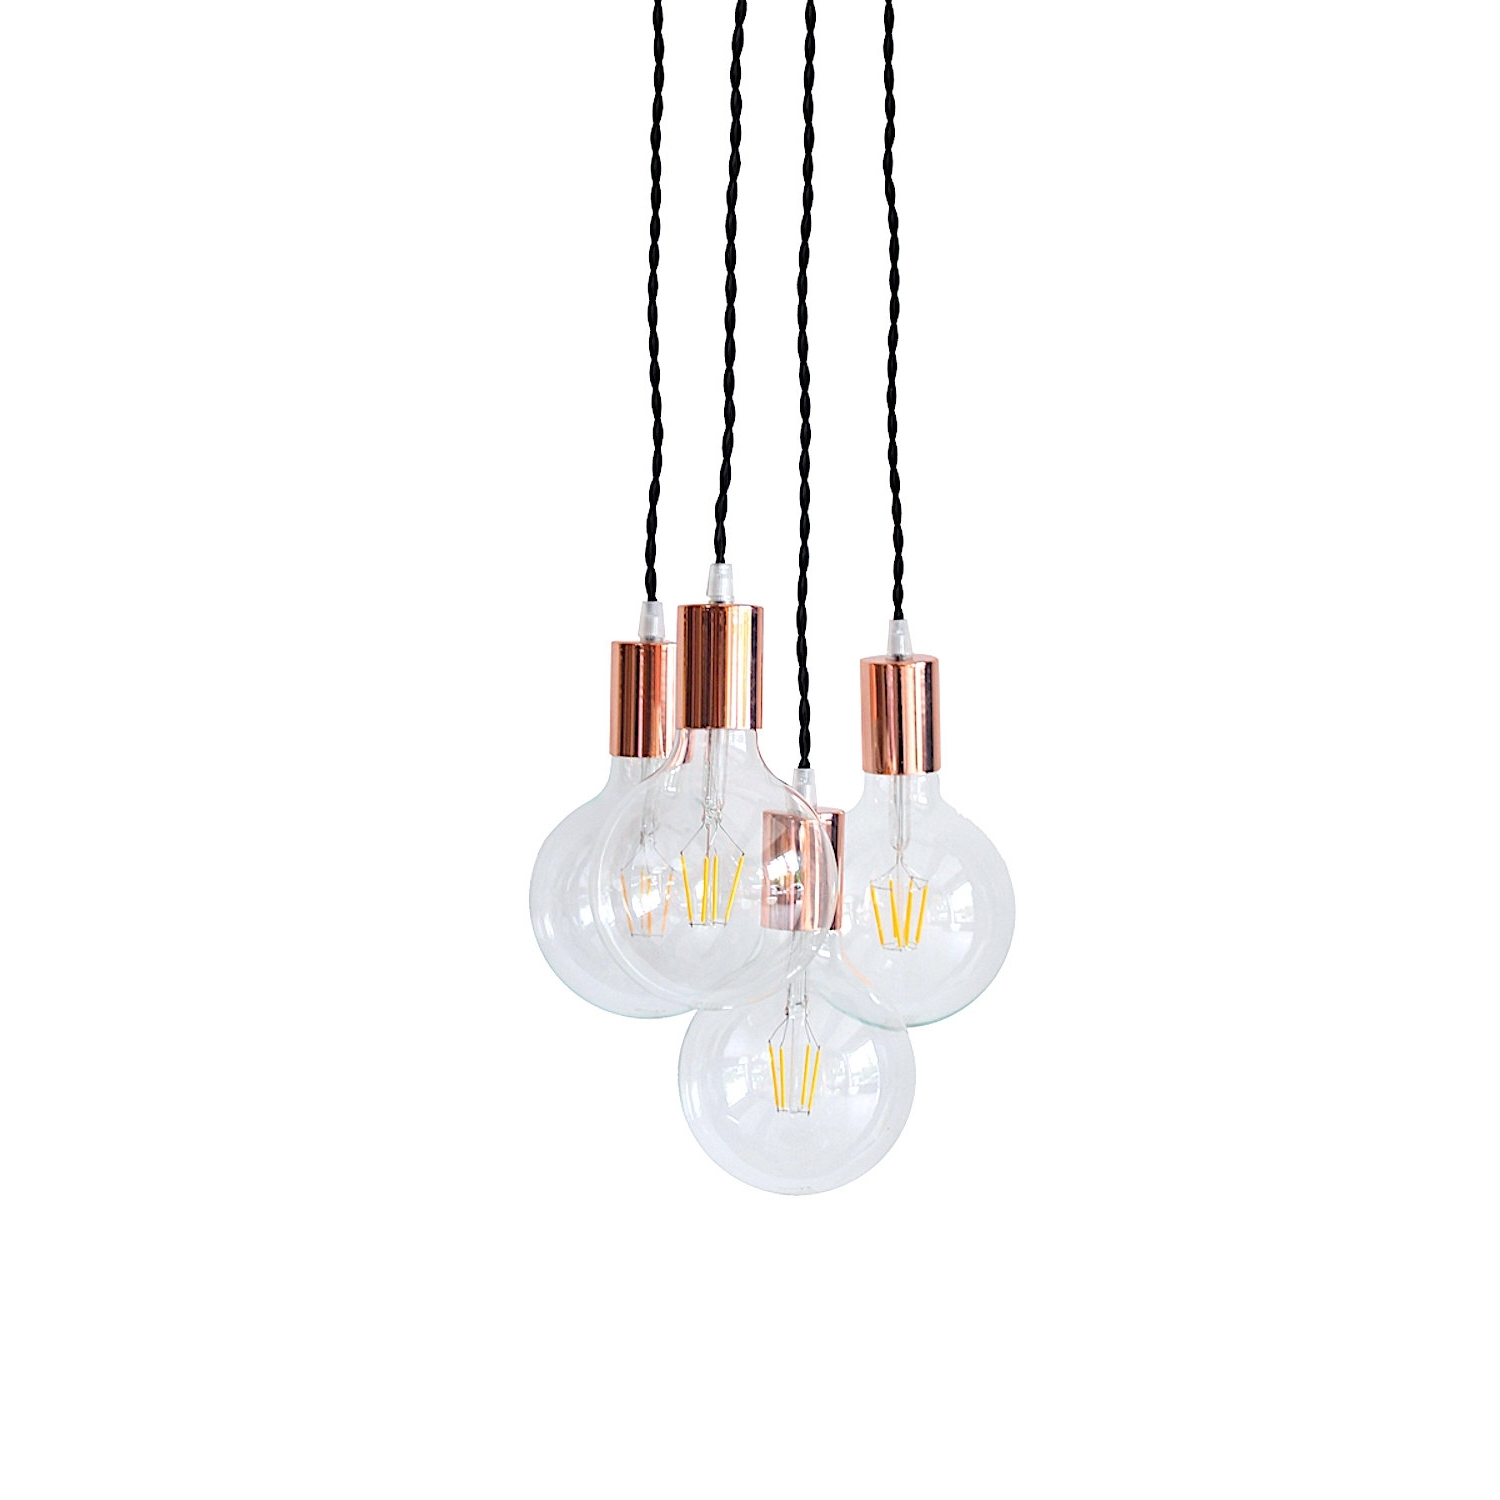 Copper Chandelier Light Cluster Rose Gold Pendant Lighting Swag In Preferred Gold Modern Chandelier (View 3 of 20)